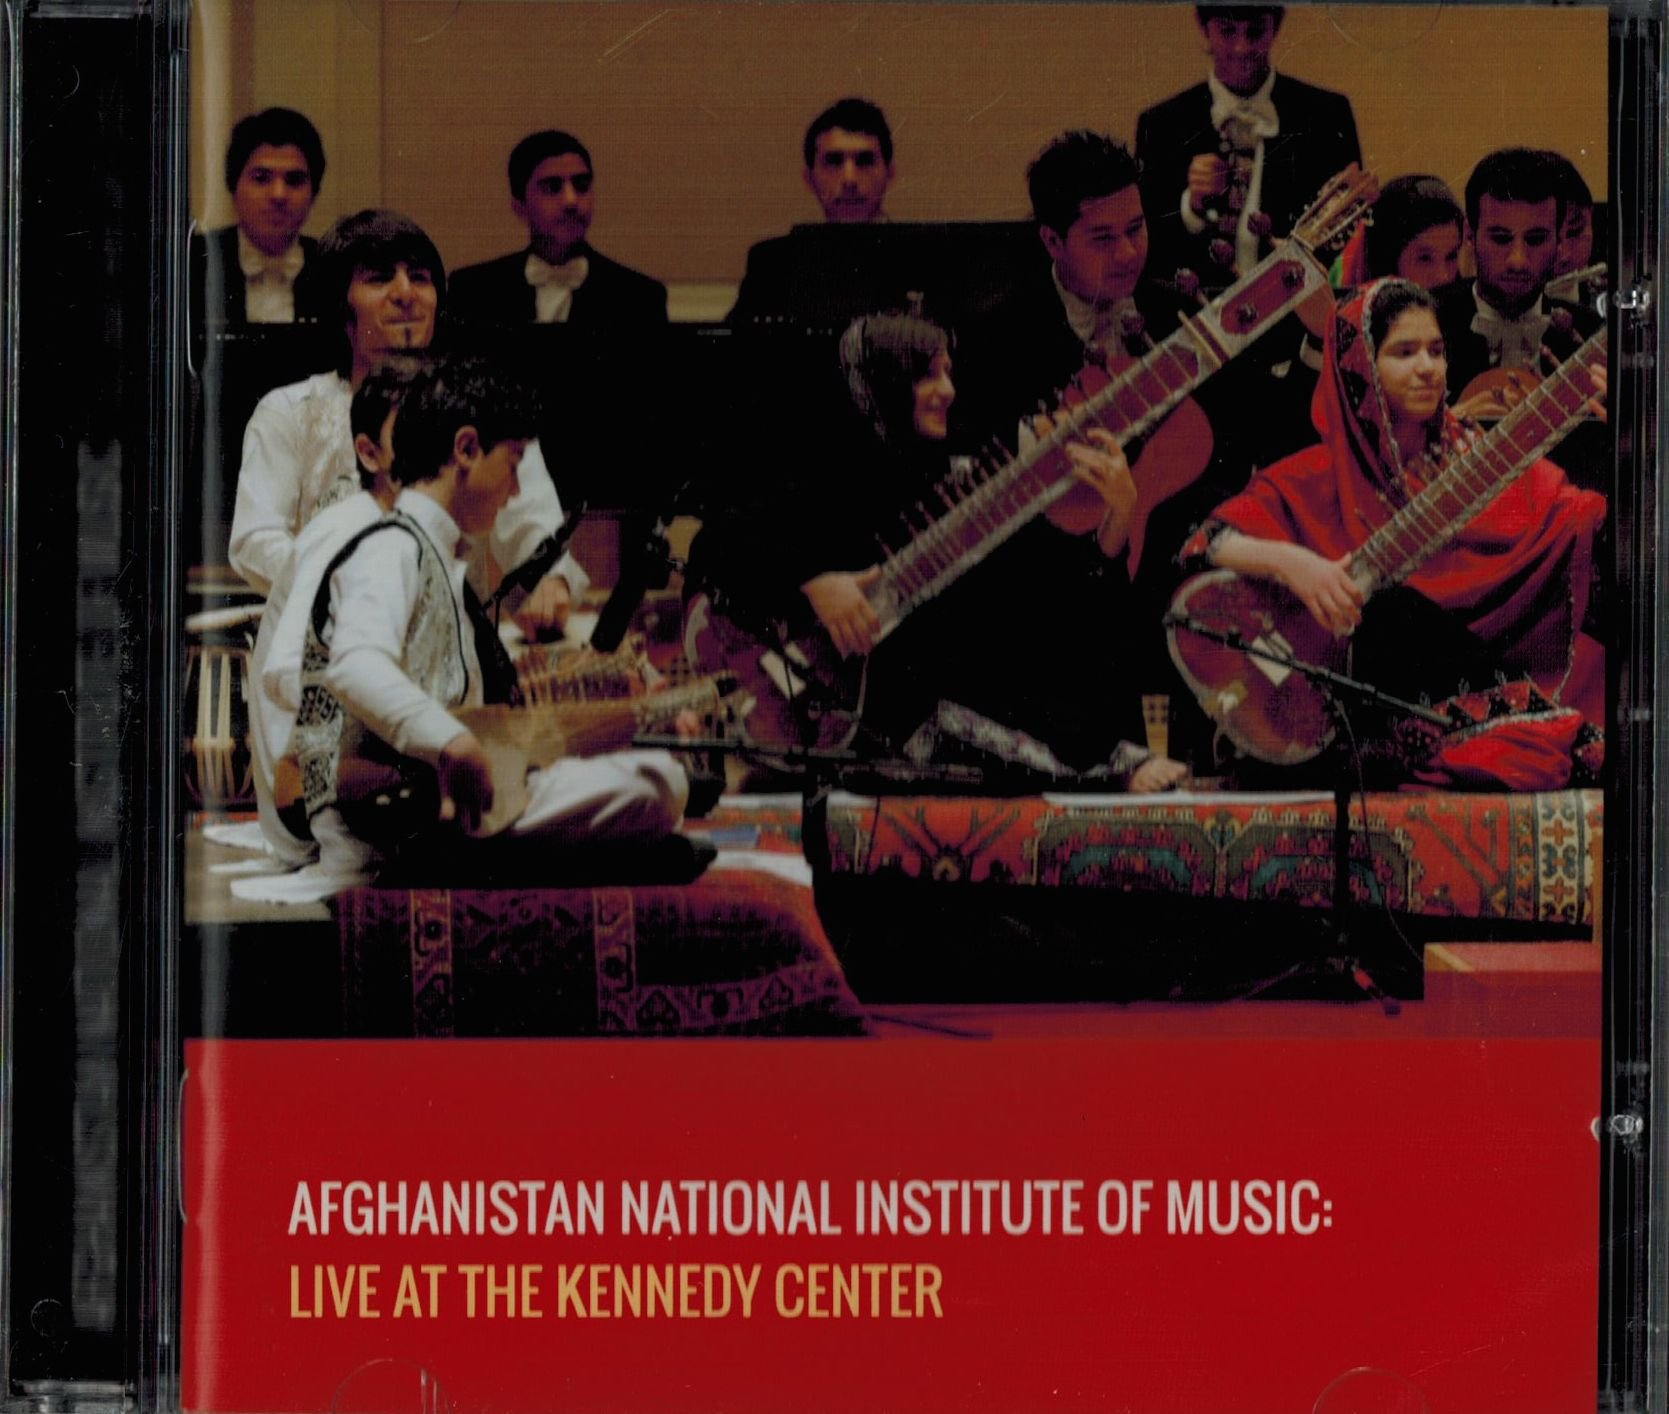 Afghanistan National Institute of Music: Live at Kennedy Center by The John F. Kennedy Center for performing arts